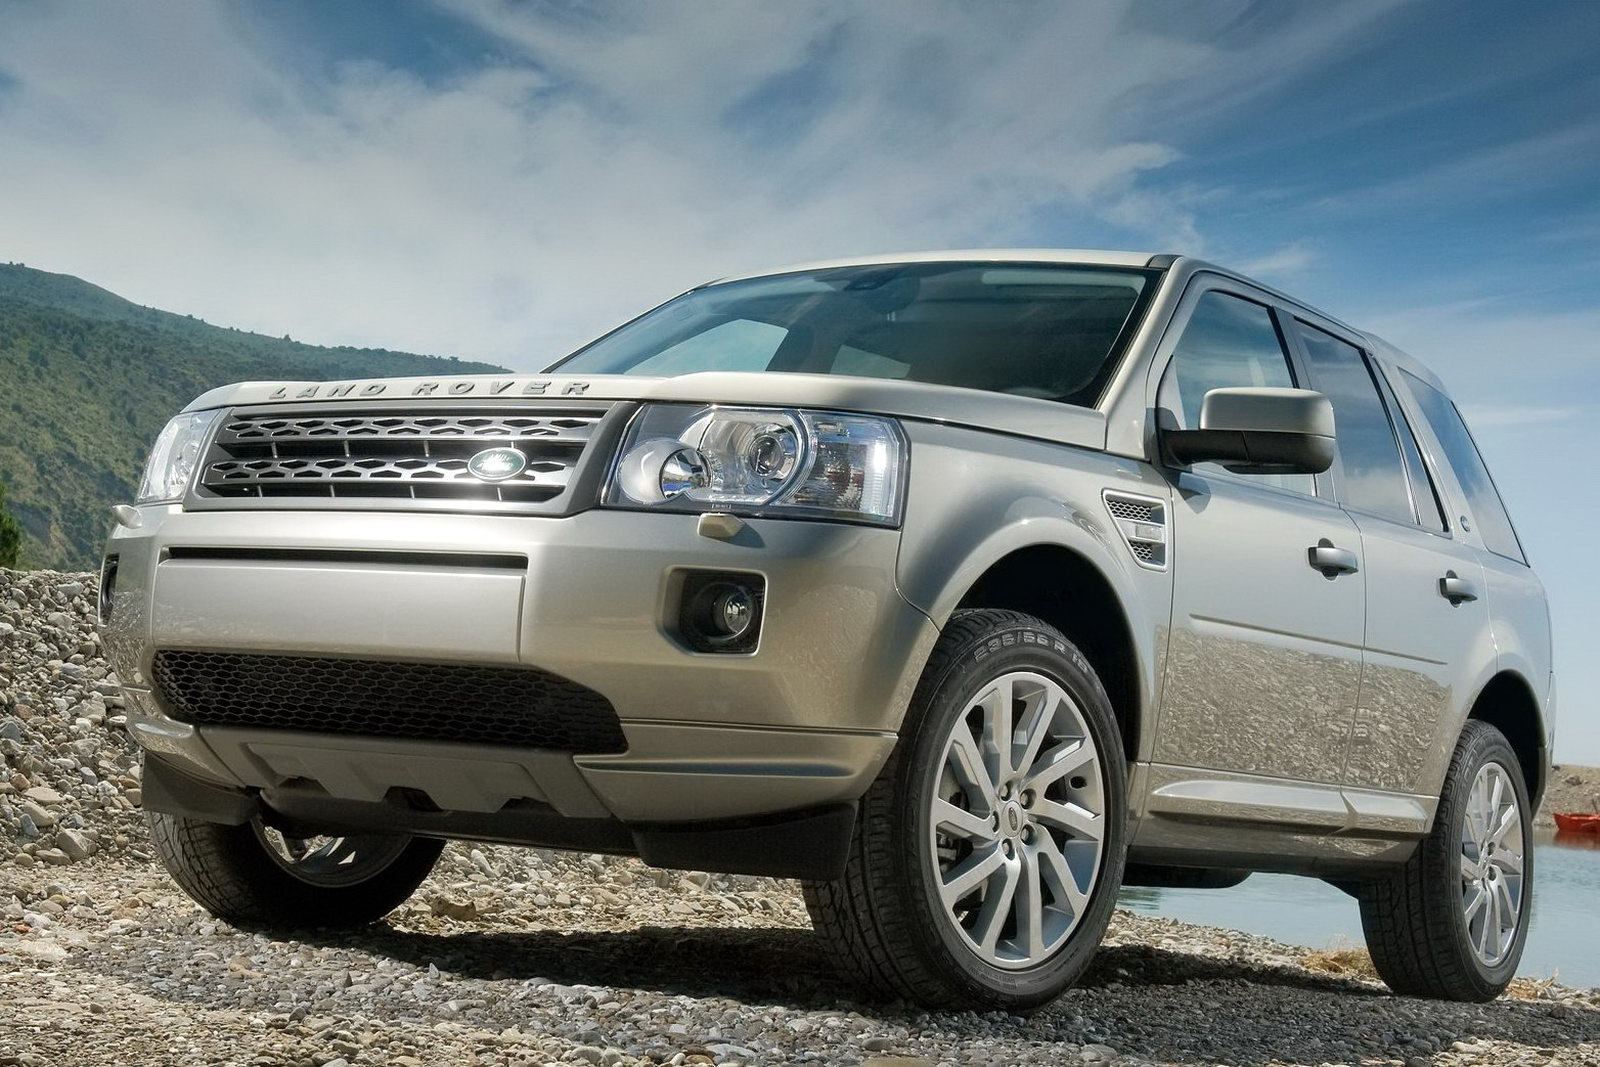 Land Rover Freelander 2011 photo - 3